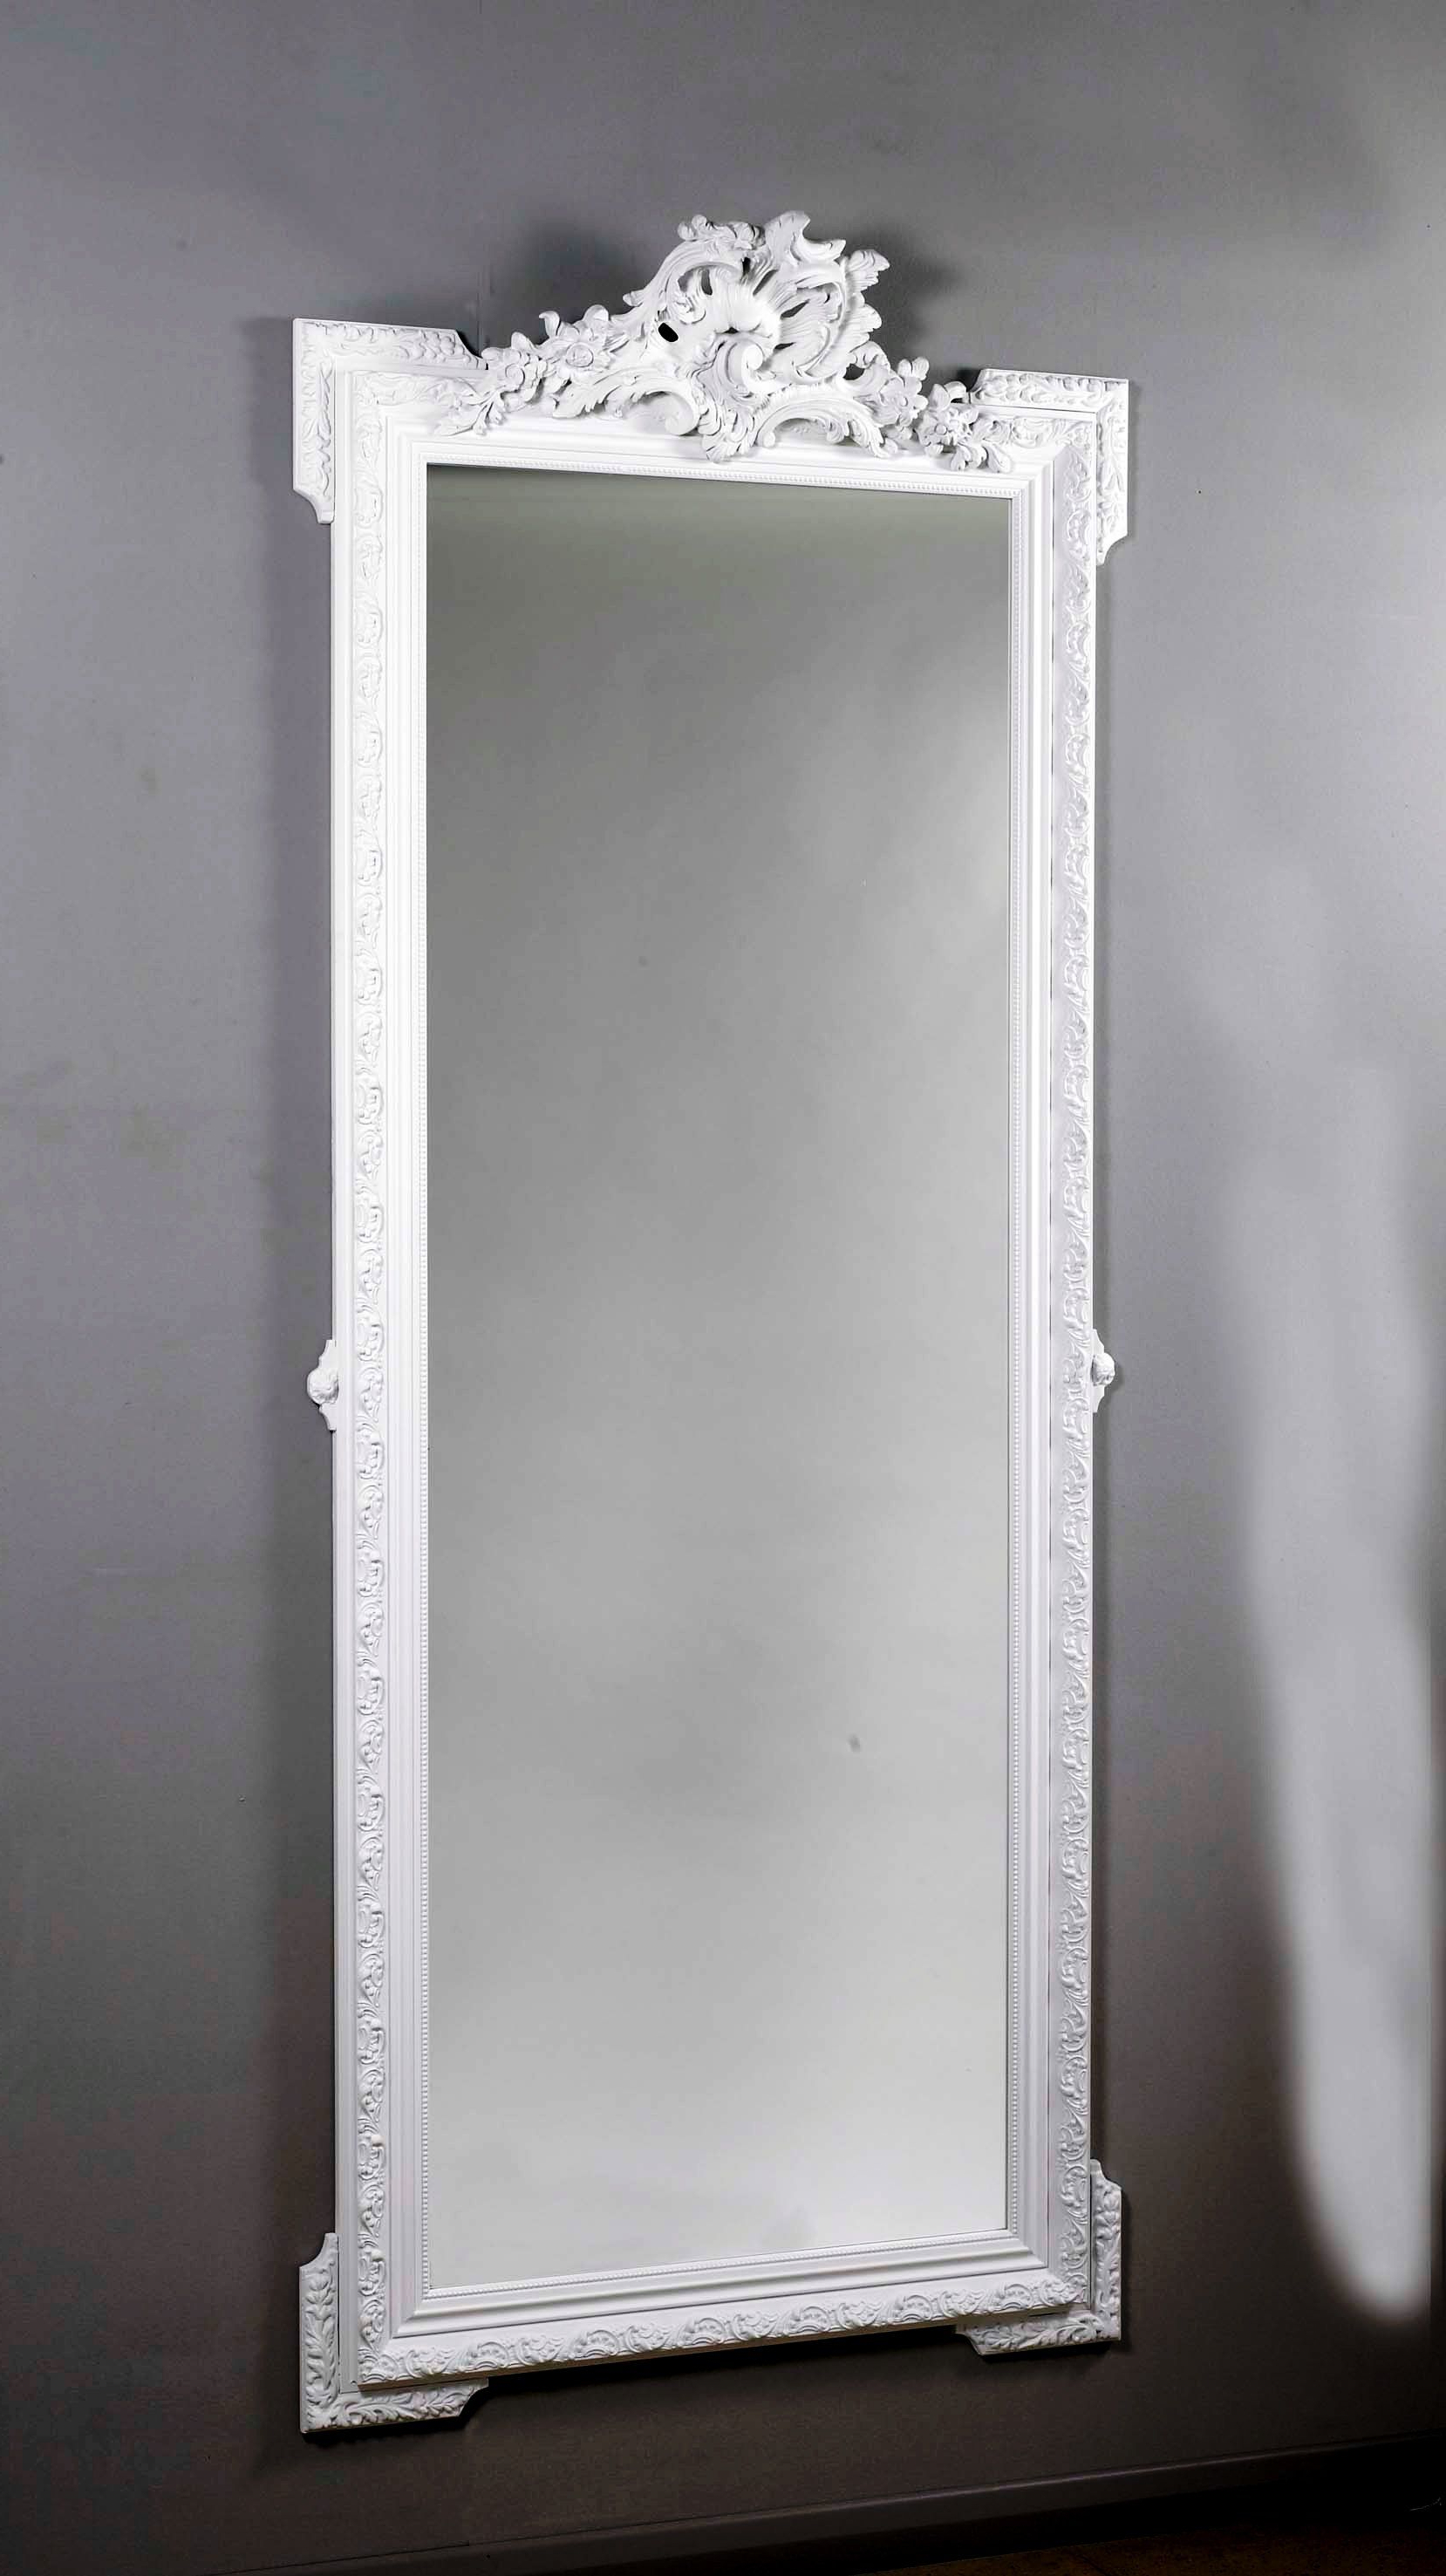 My Style Pertaining To Best And Newest White Full Length Wall Mirrors (View 3 of 20)